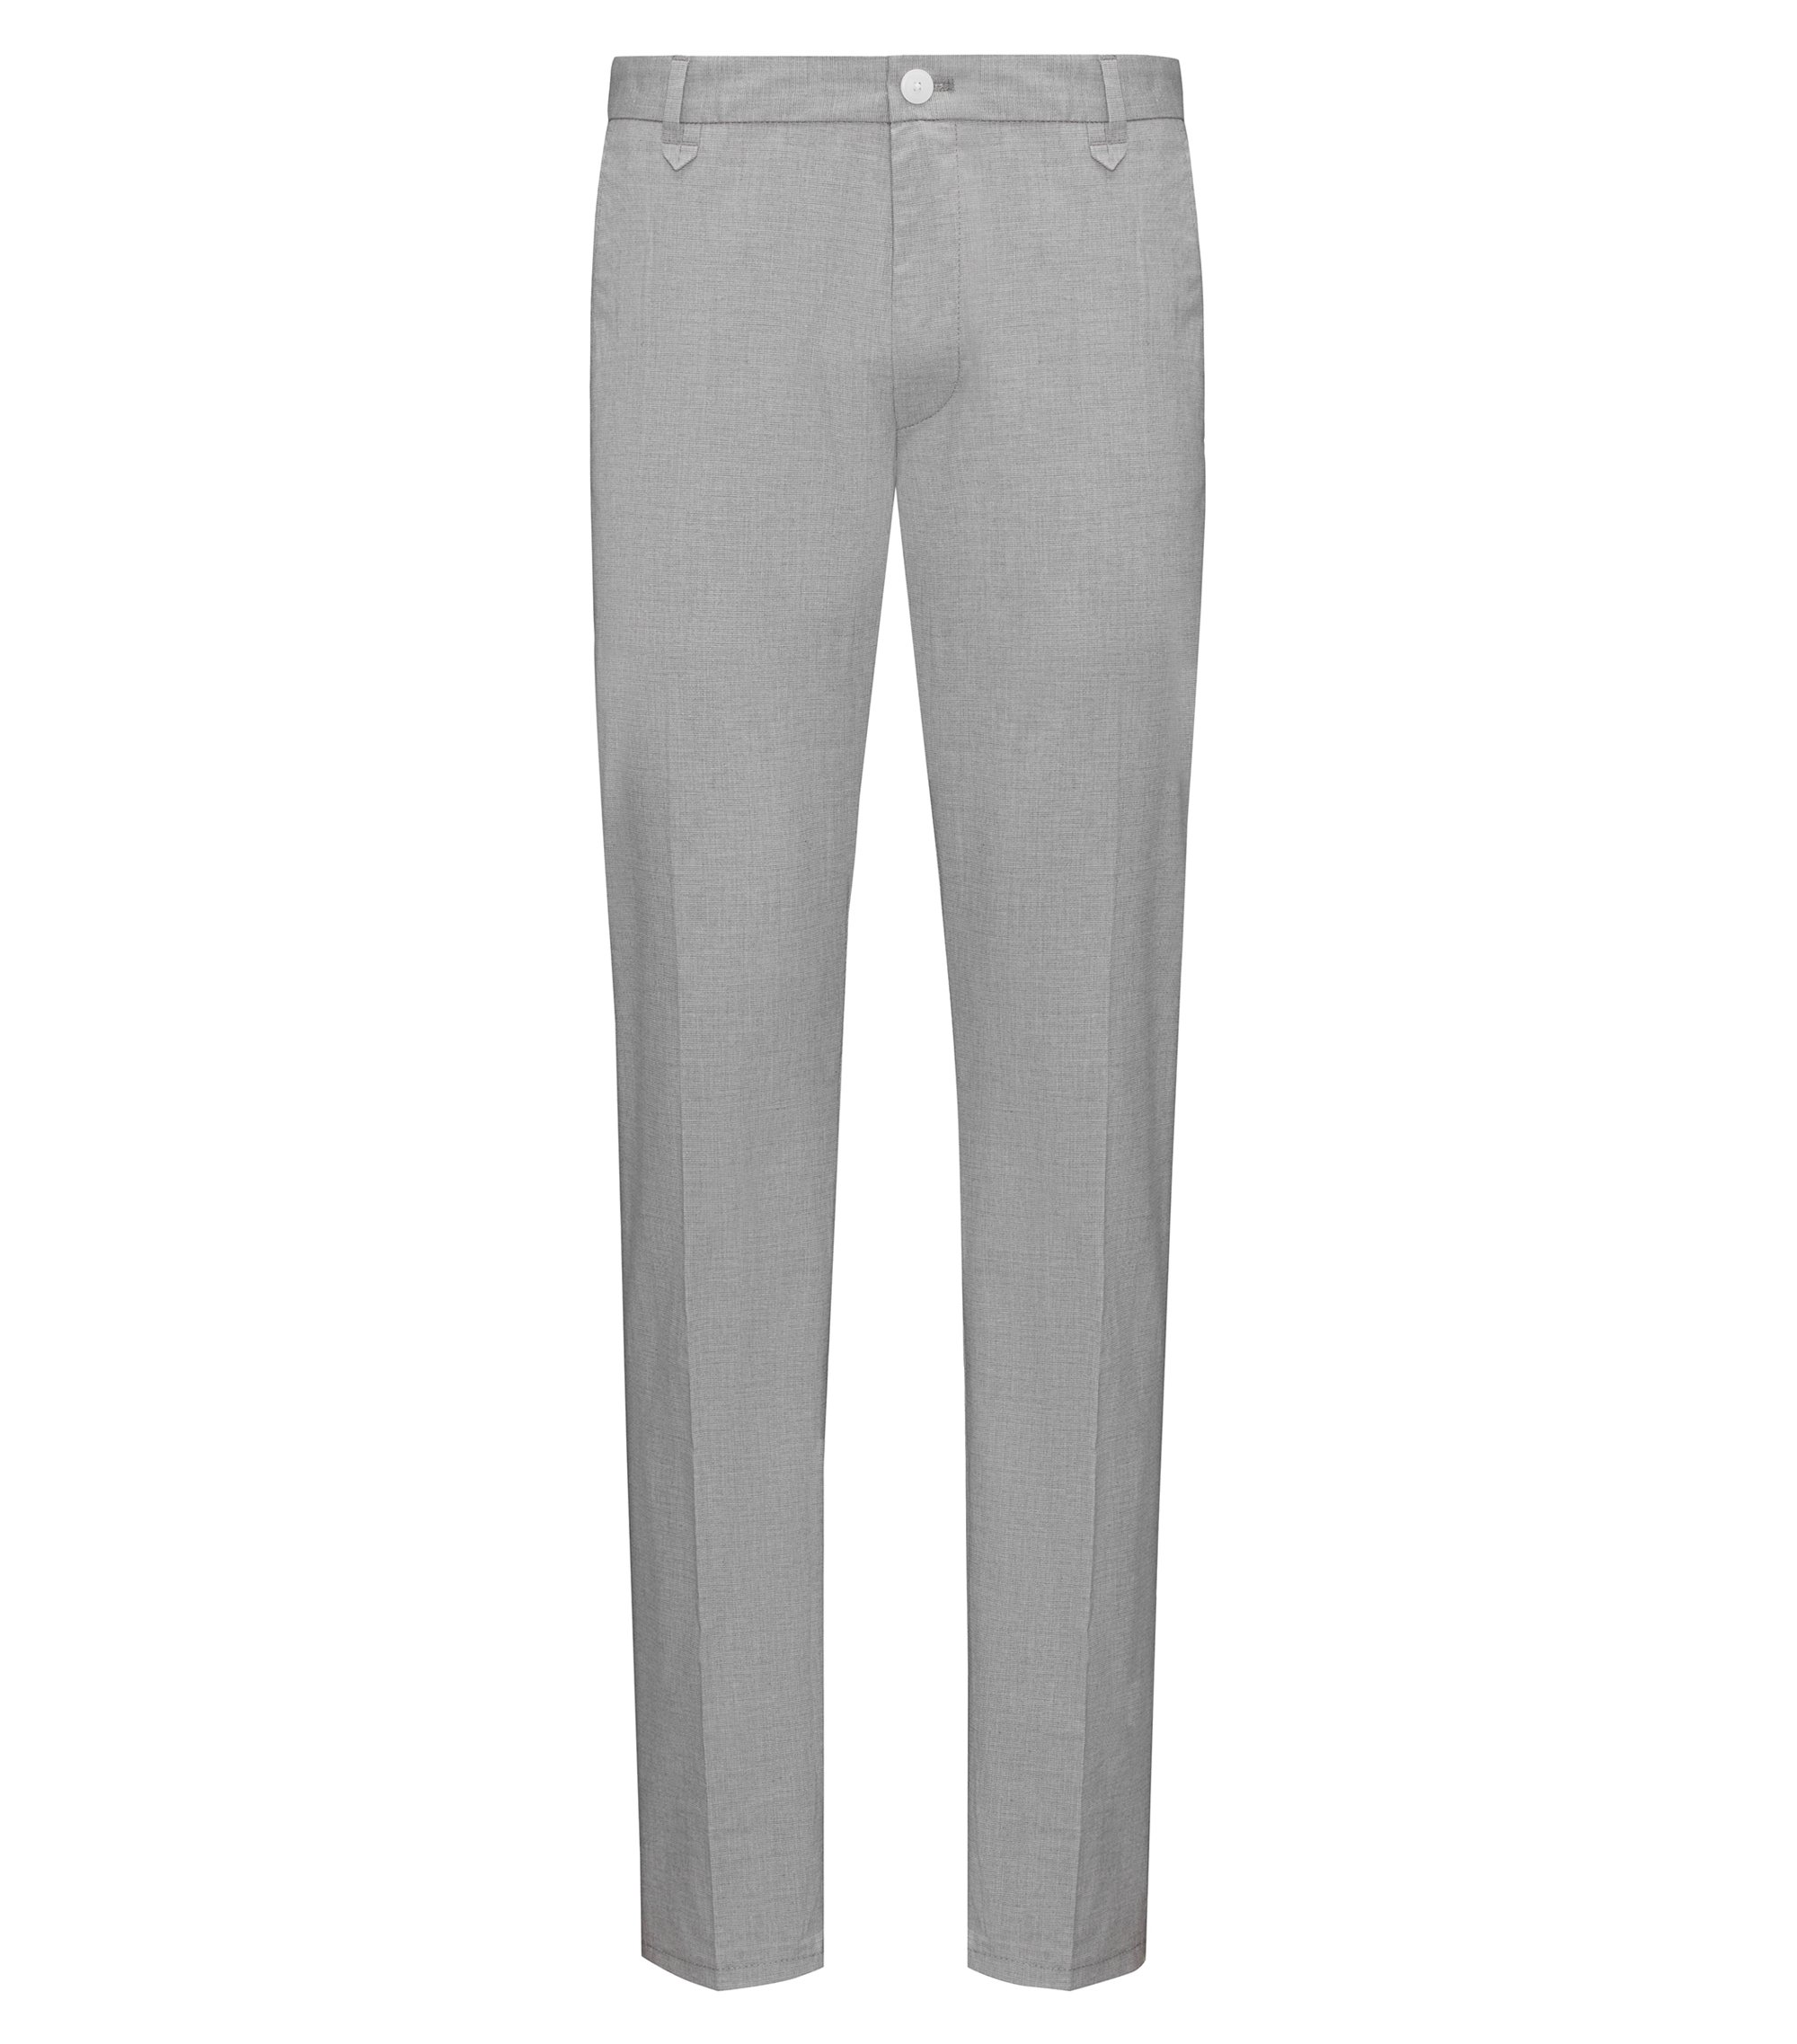 Stretch Cotton Pant, Extra Slim Fit | Heldor, Open Grey